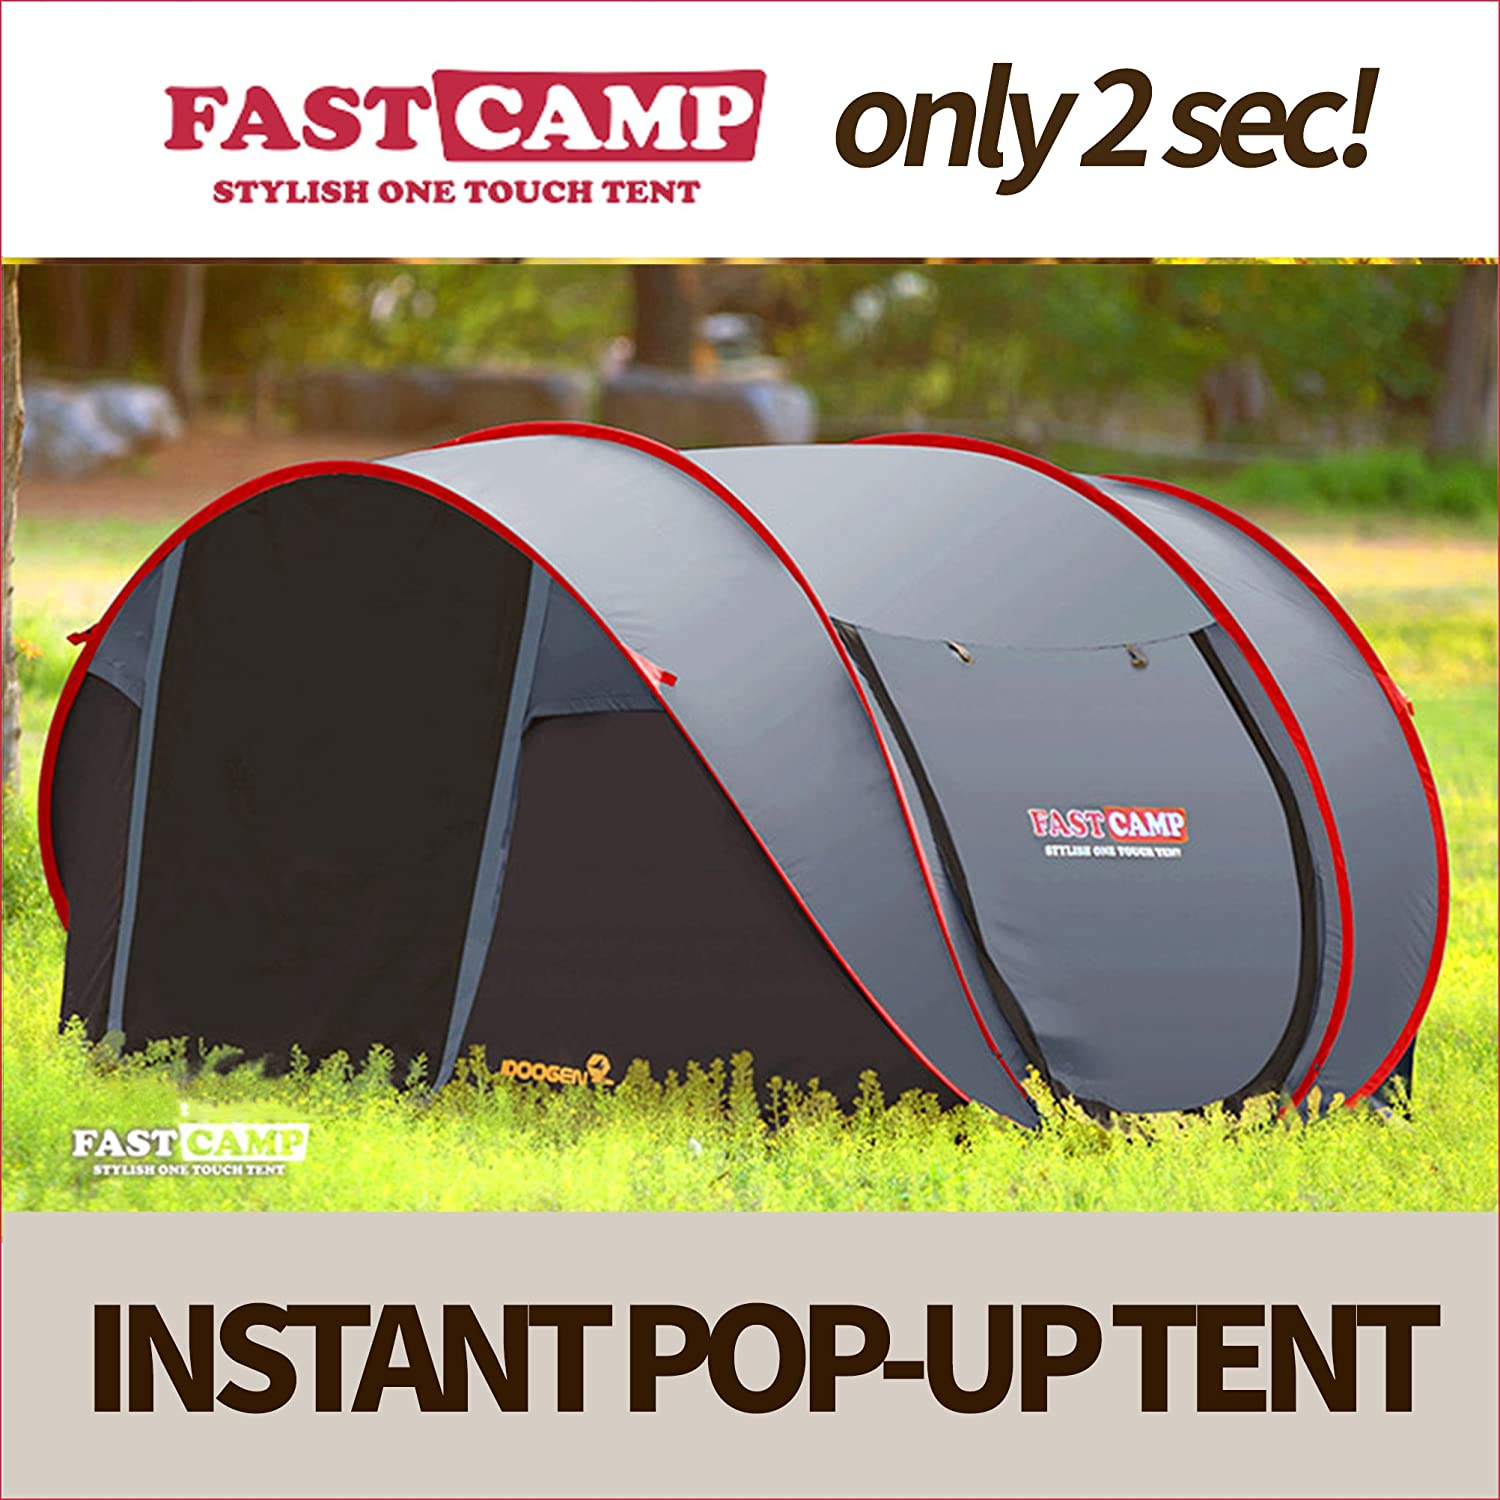 Fastcamp Tent Super Big for 4-5persons (3-5days Delivery) (Grey) 141[並行輸入]   B01K4L7R5A